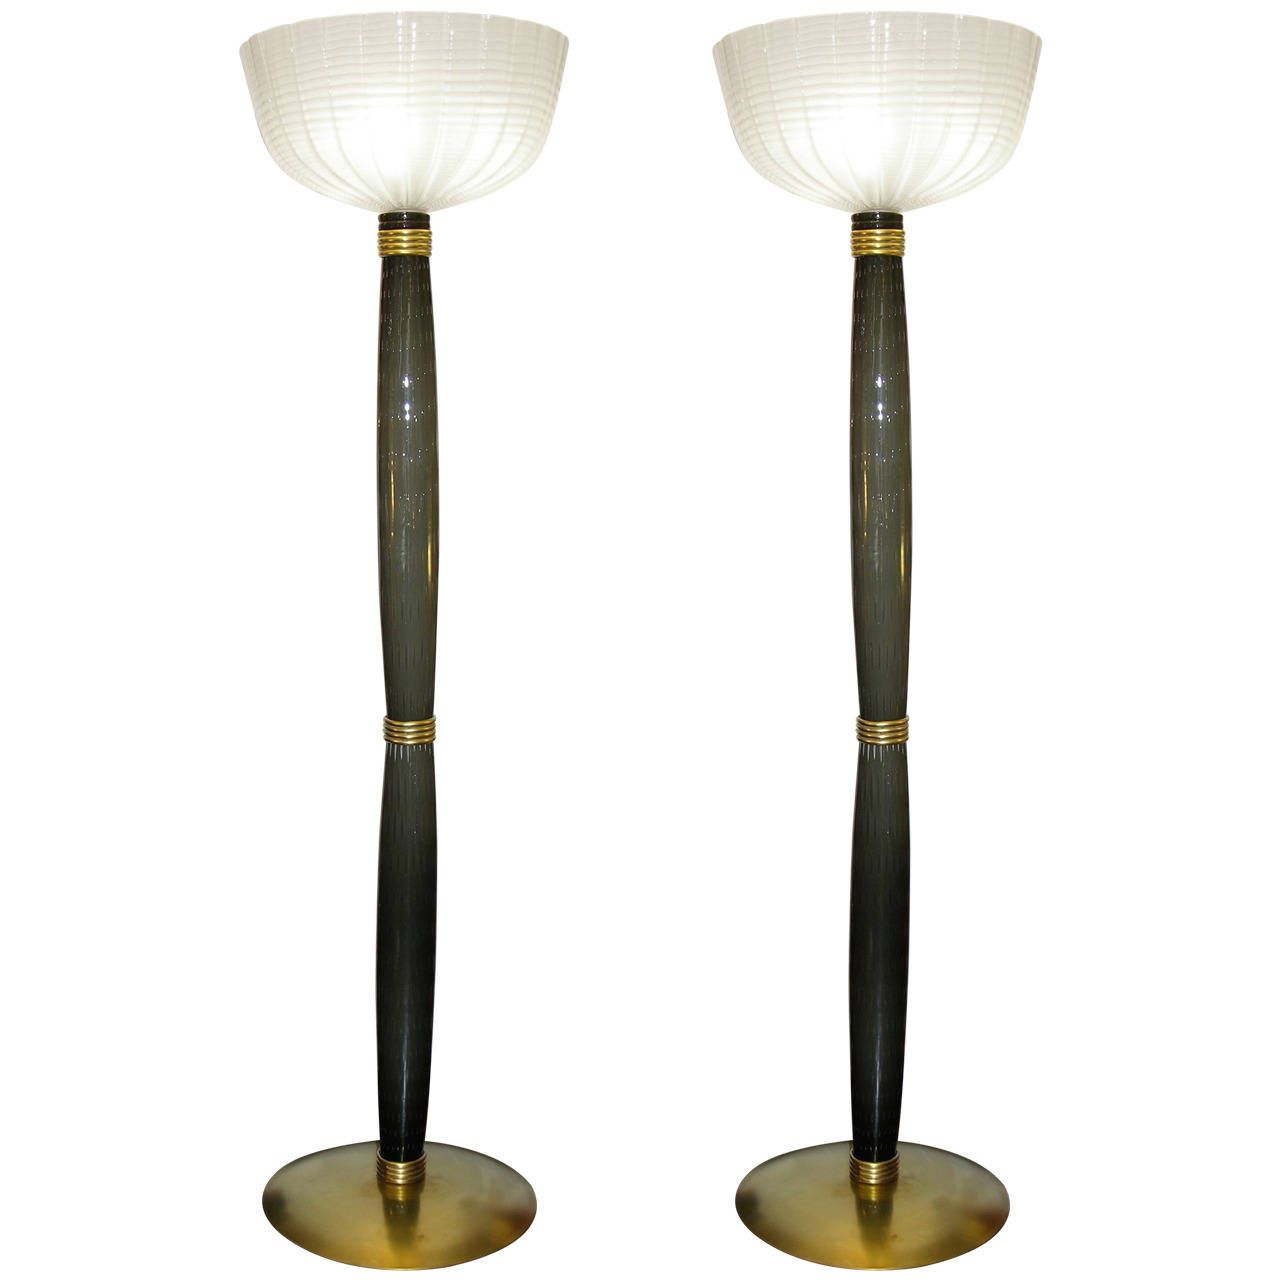 Extremely Rare Pair of Barovier e Toso Olive Grey Murano Glass Floor Lamps   From a unique collection of antique and modern floor lamps at https://www.1stdibs.com/furniture/lighting/floor-lamps/